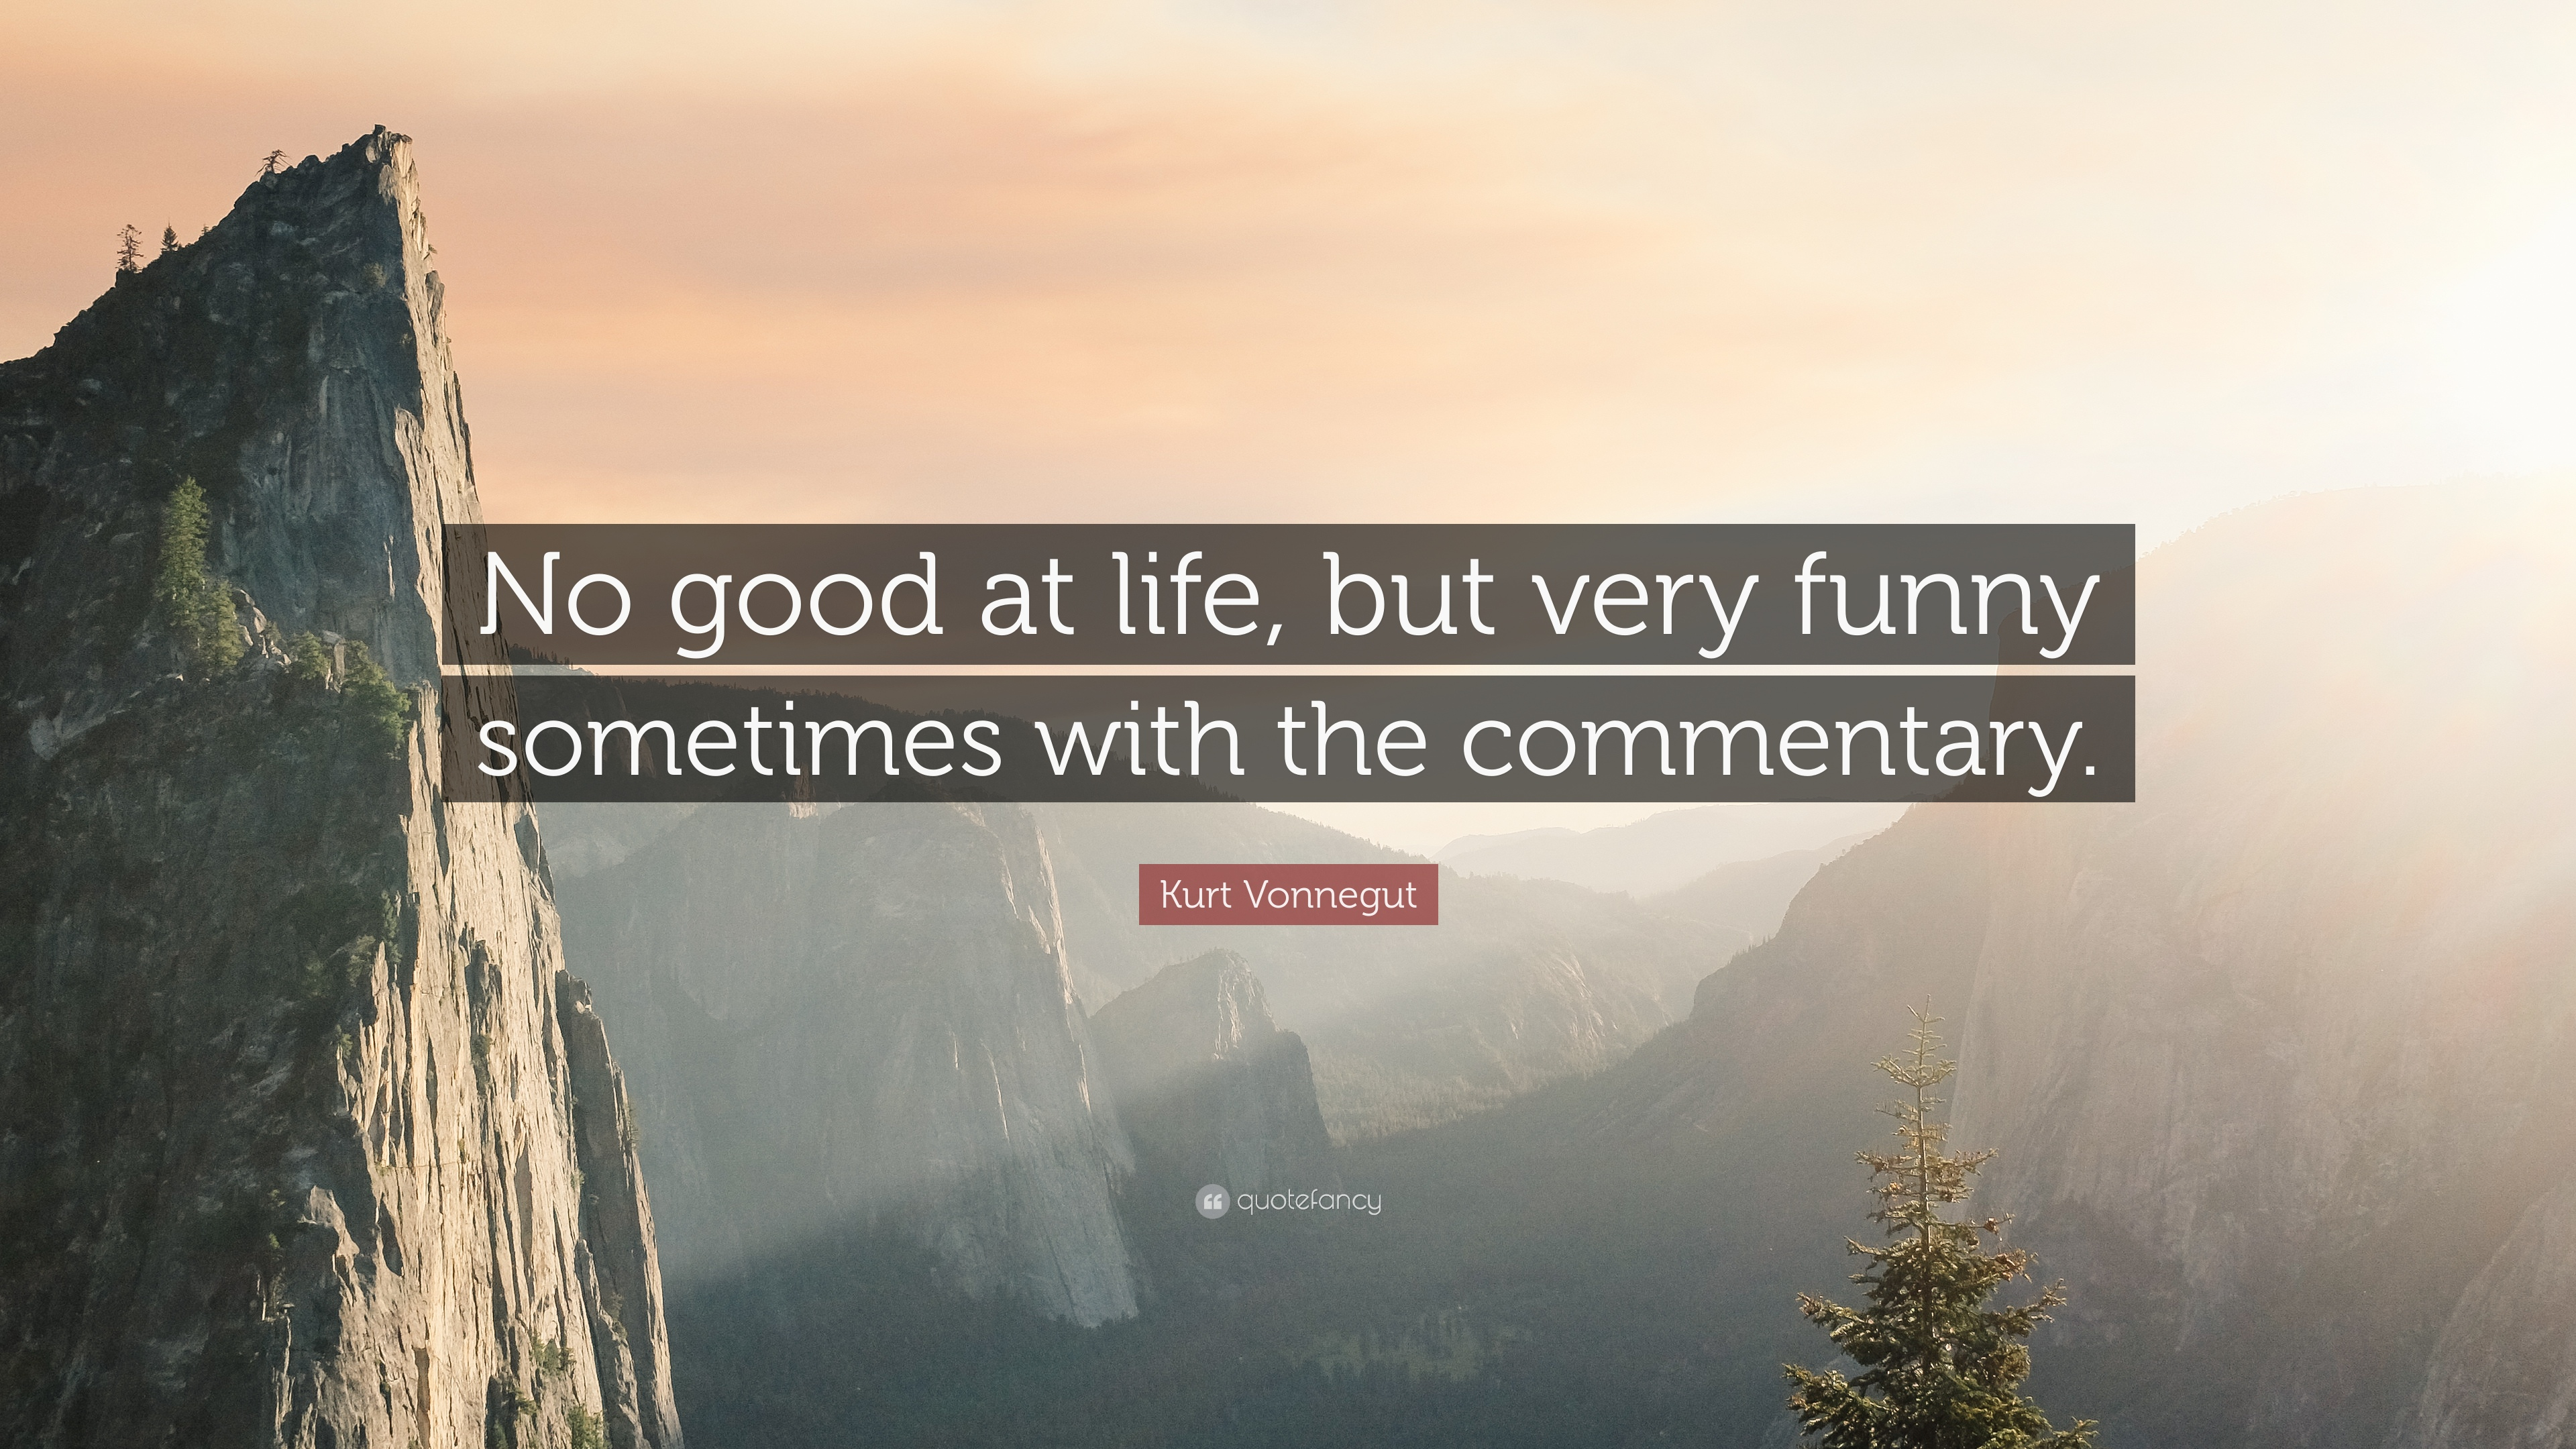 Kurt Vonnegut Quote No Good At Life But Very Funny Sometimes With